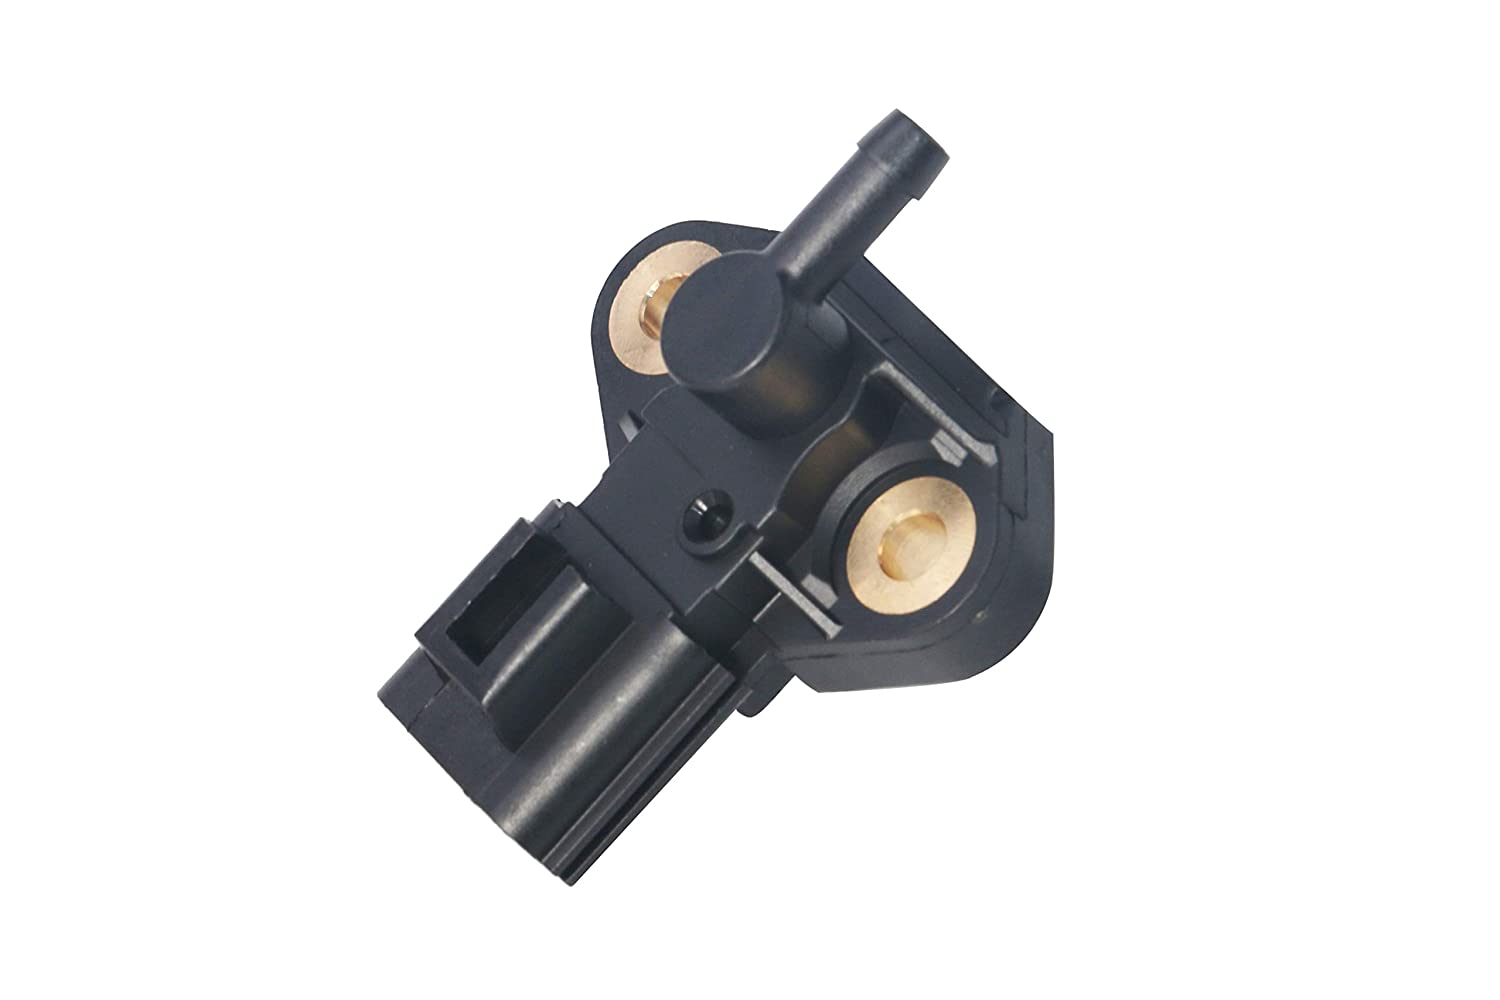 F250 Super Duty Replaces CM5229 3F2Z9-G756-AC 3F2Z9G756AC Fits Ford Crown Victoria Five Hundred Fuel Rail Injection Pressure Sensor Focus Explorer E-150 and more Mustang 0261230093 F350